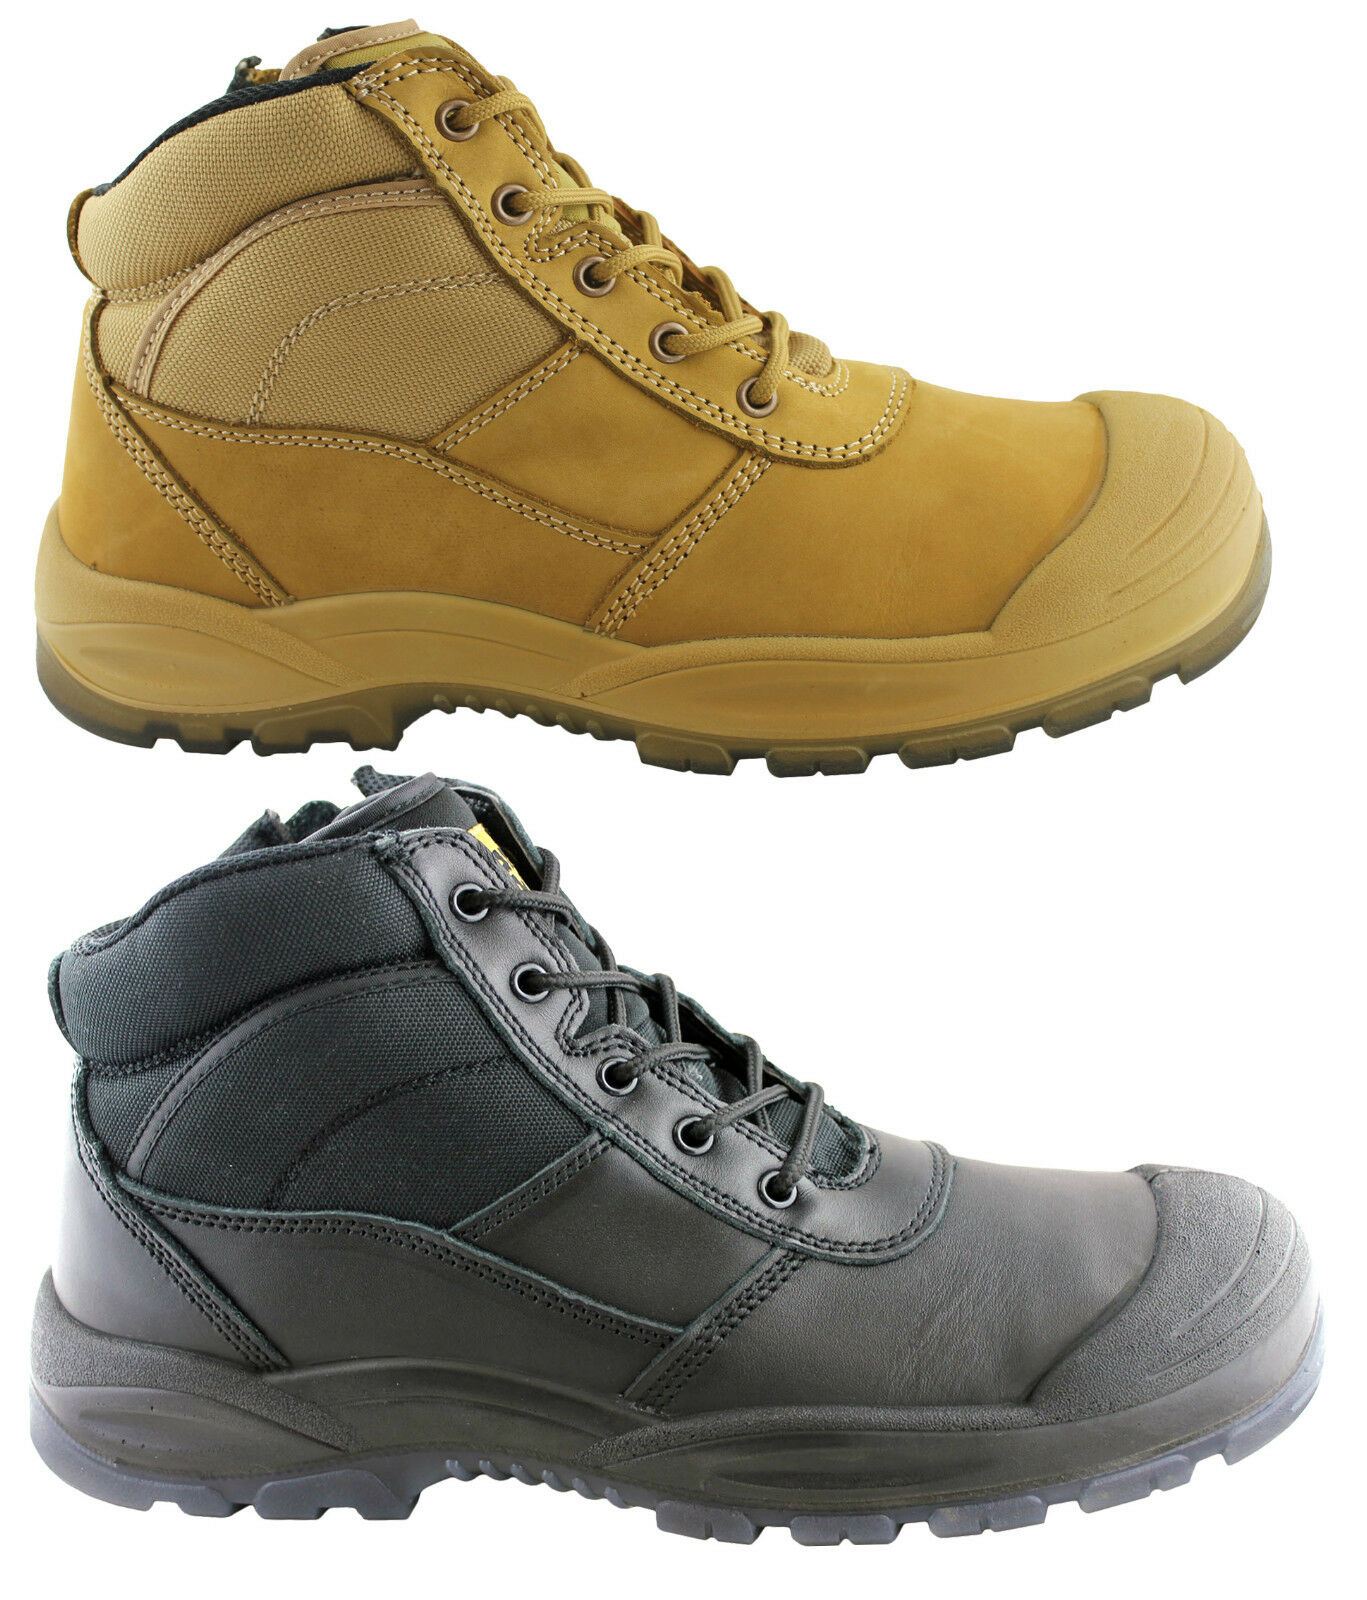 HARD YAKKA MENS UTILITY SIDE ZIP SAFETY TOE/INDUSTRIAL BOOTS WITH STEEL CAP TOE/INDUSTRIAL SAFETY 166b4e